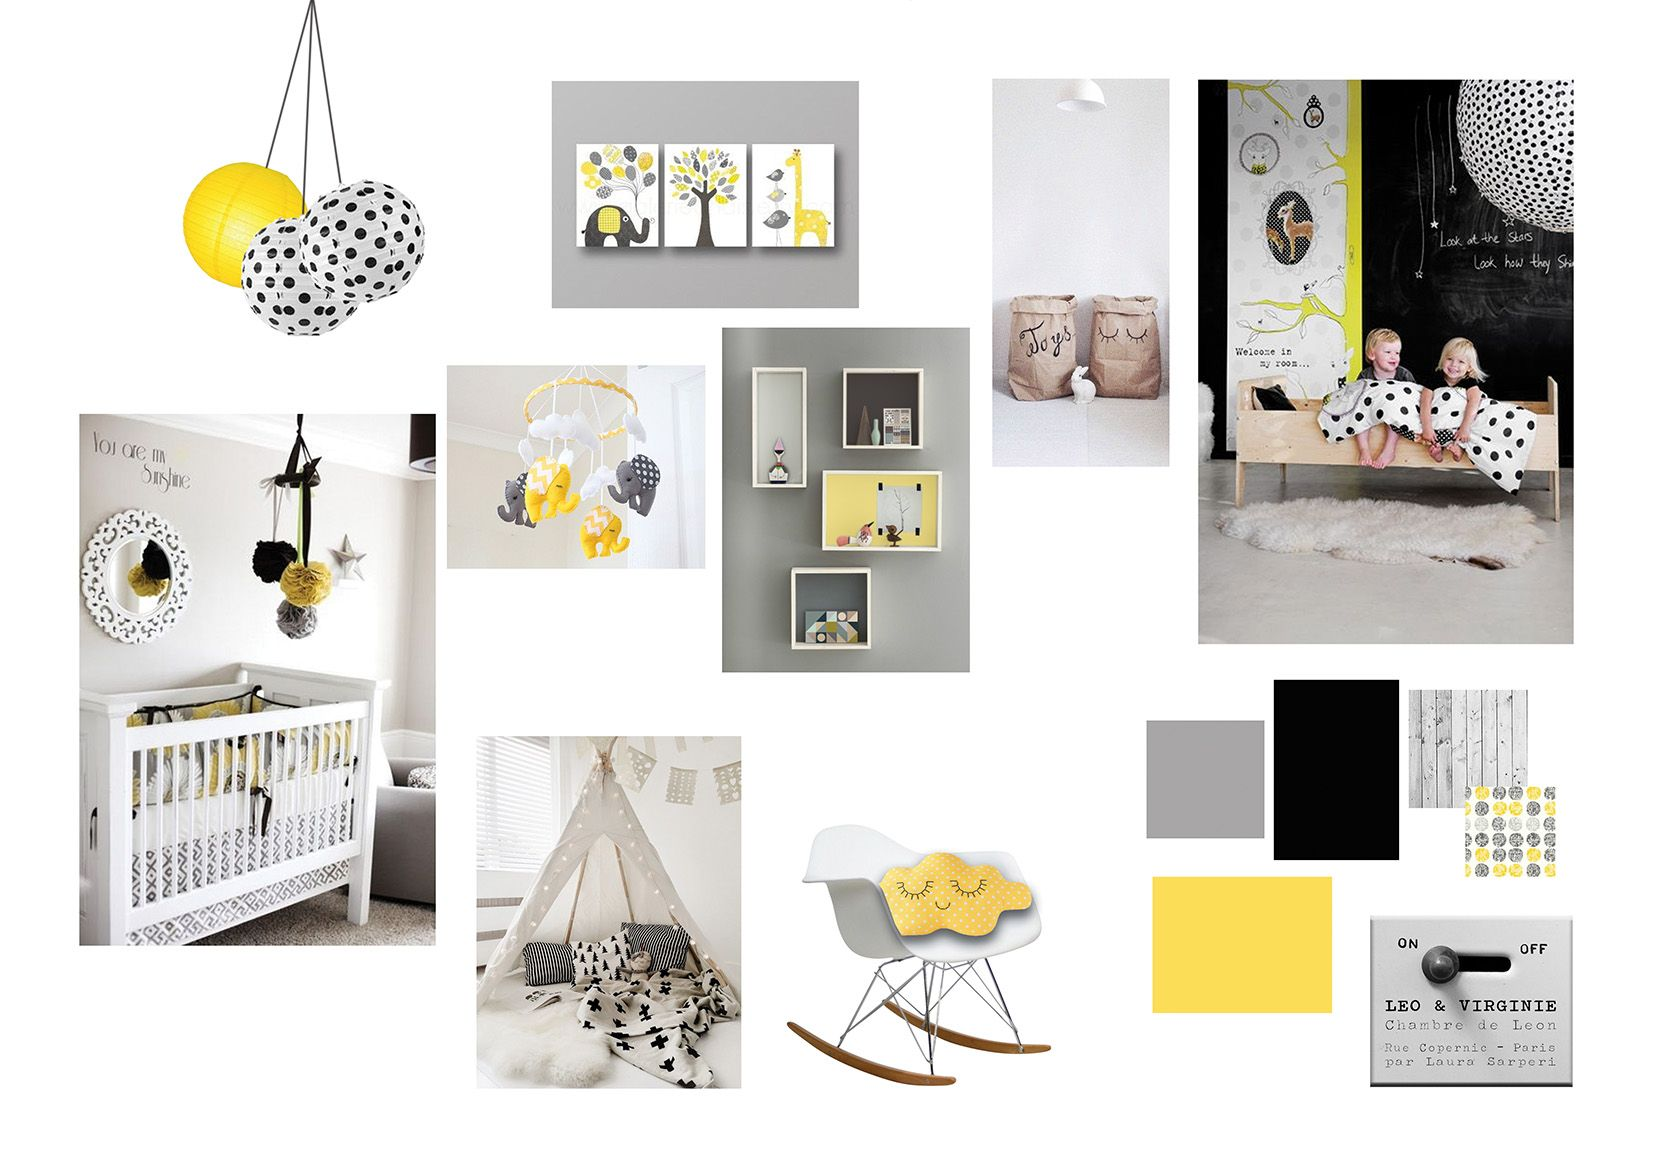 planche d 39 ambiance chambre d 39 enfant jaune noir gris blanc. Black Bedroom Furniture Sets. Home Design Ideas